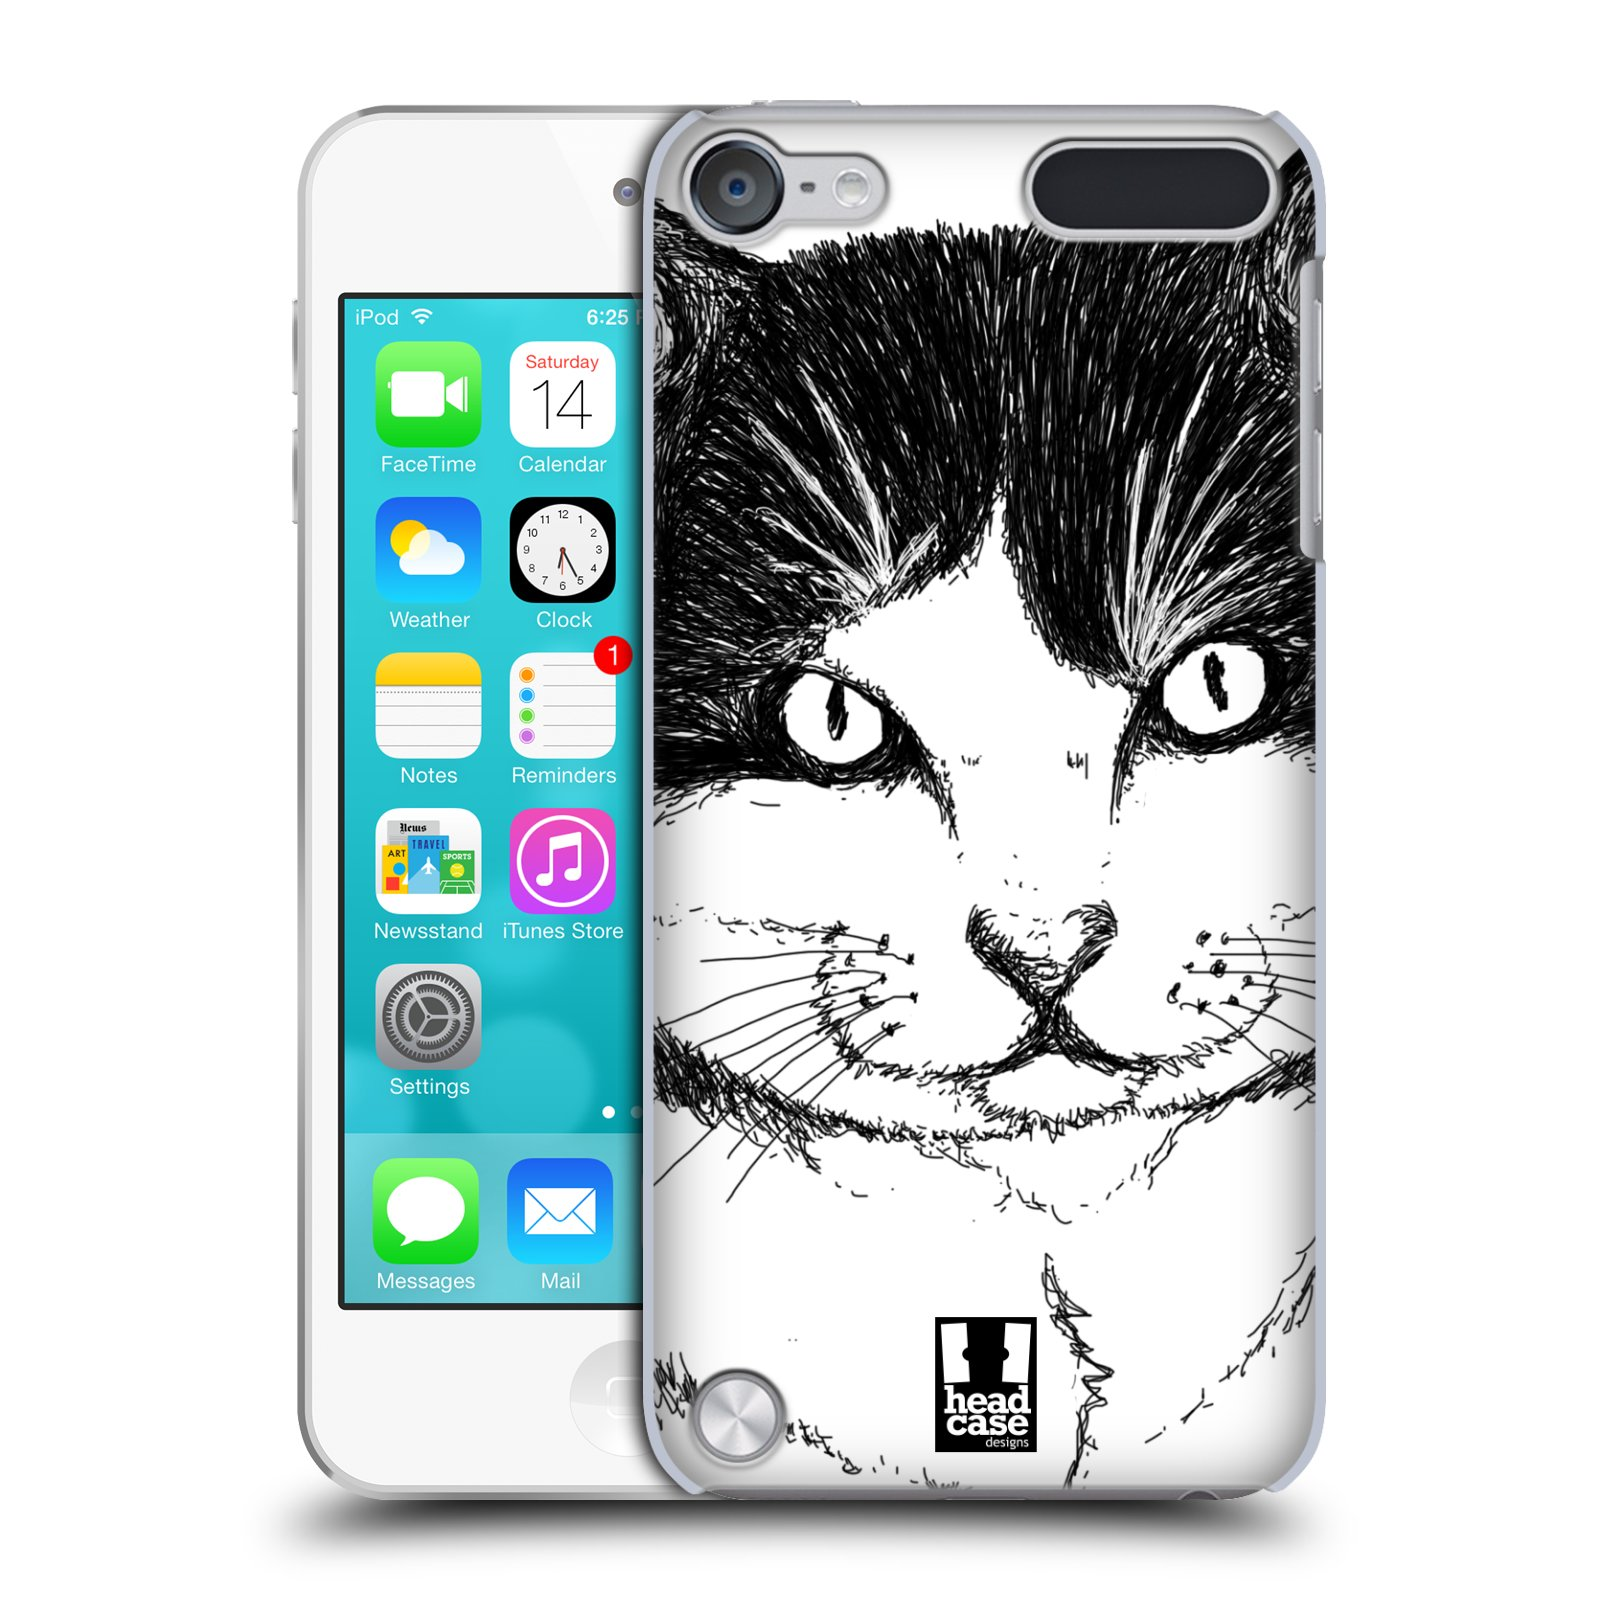 HEAD CASE DESIGNS DRAWN ANIMALS CASE COVER FOR APPLE iPOD TOUCH 5G 5TH GEN